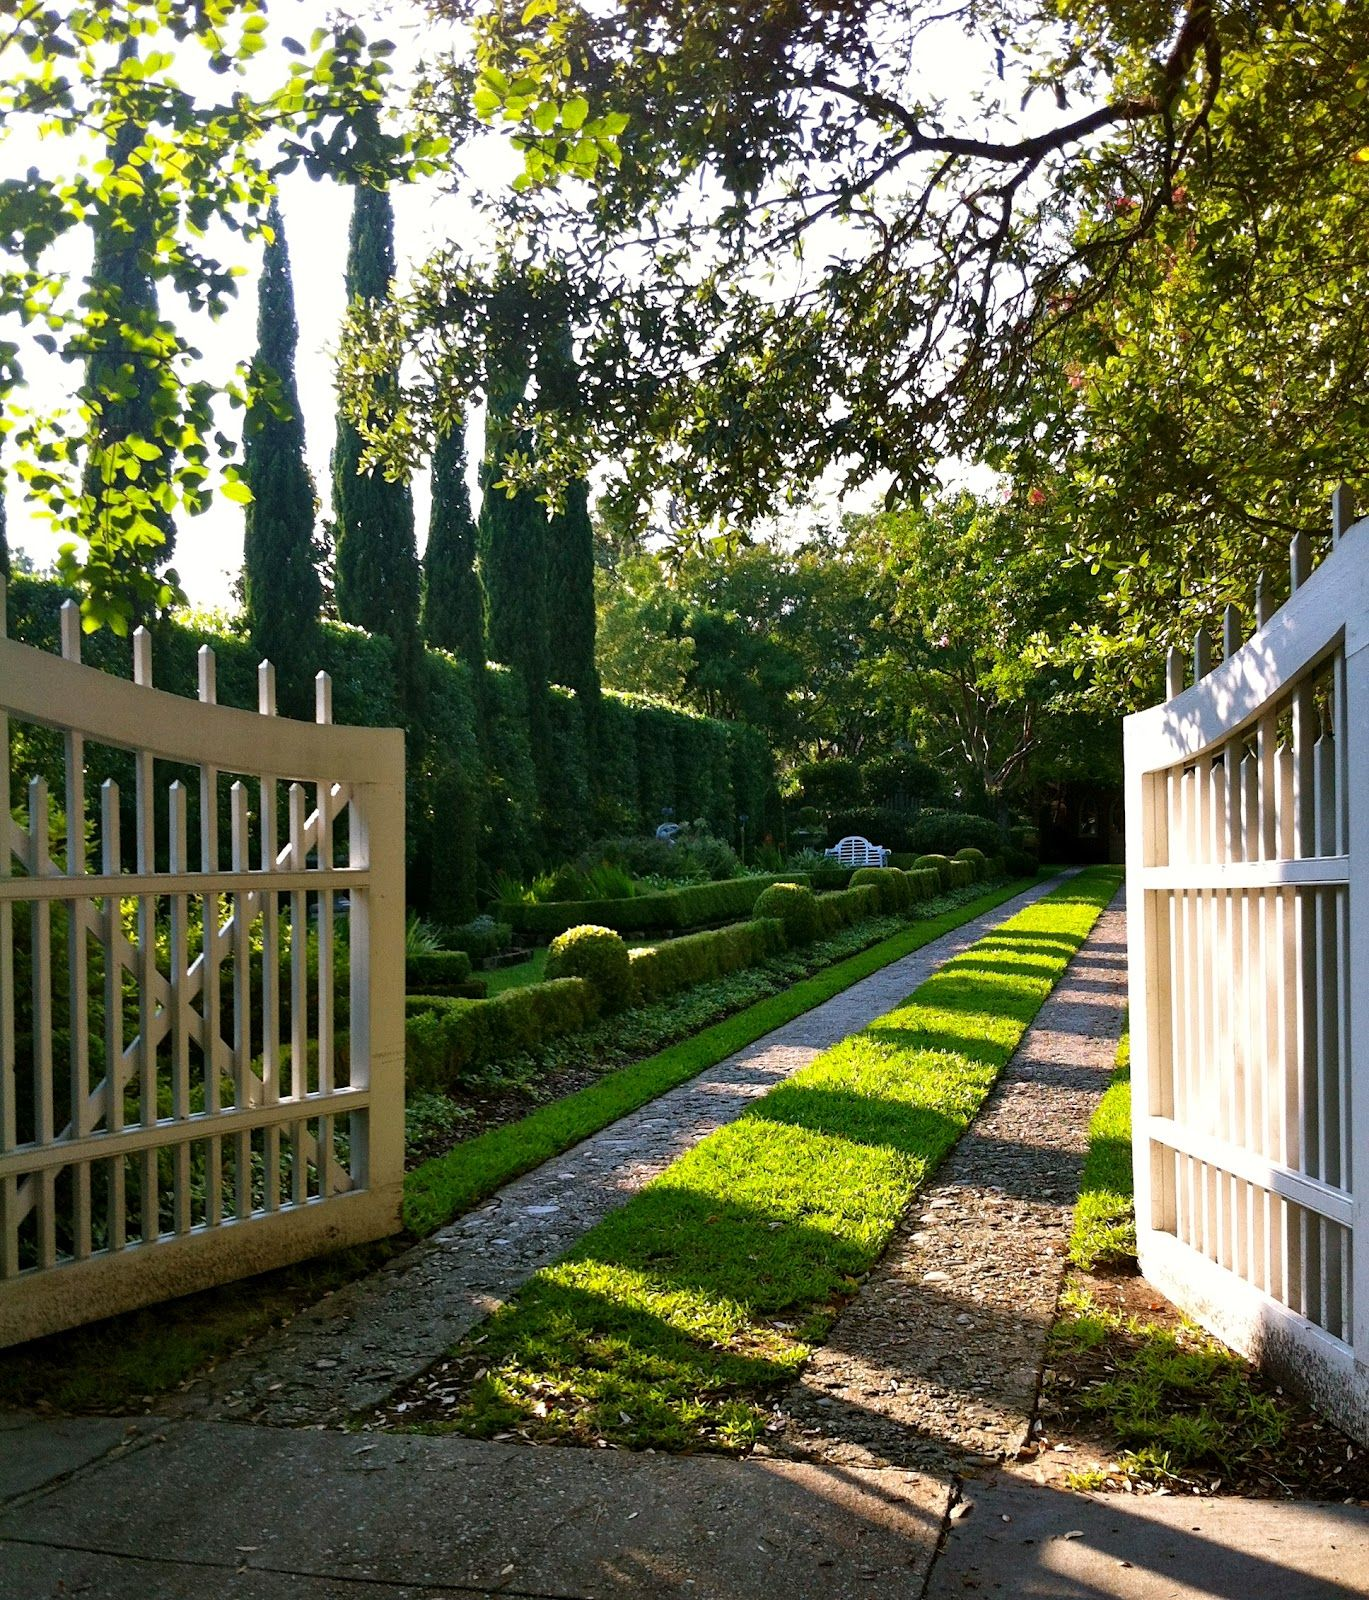 Easy Landscaping Ideas You Can Try: I Am Continually Drawn To The Historic Beauty Of Early